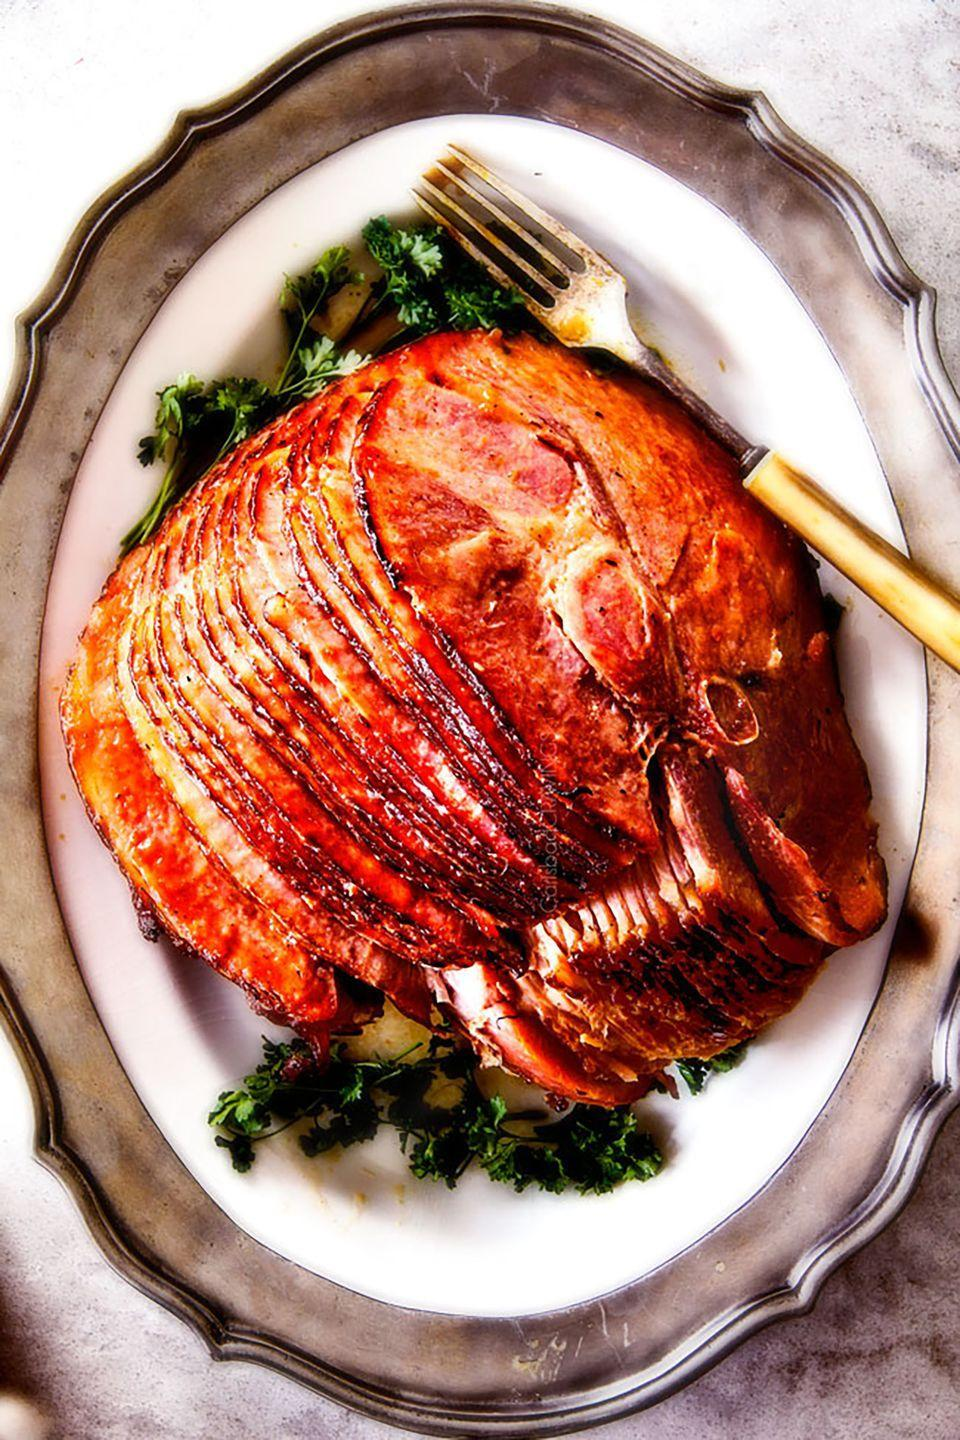 """<p>This easy, caramelized dish only requires minutes of hands-on-prep—giving you more time to play some reindeer games.</p><p><strong>Get the recipe at <a href=""""http://carlsbadcravings.com/baked-ham-with-apple-cider-maple-glaze/"""" rel=""""nofollow noopener"""" target=""""_blank"""" data-ylk=""""slk:Carlsbad Cravings"""" class=""""link rapid-noclick-resp"""">Carlsbad Cravings</a>.</strong> </p>"""